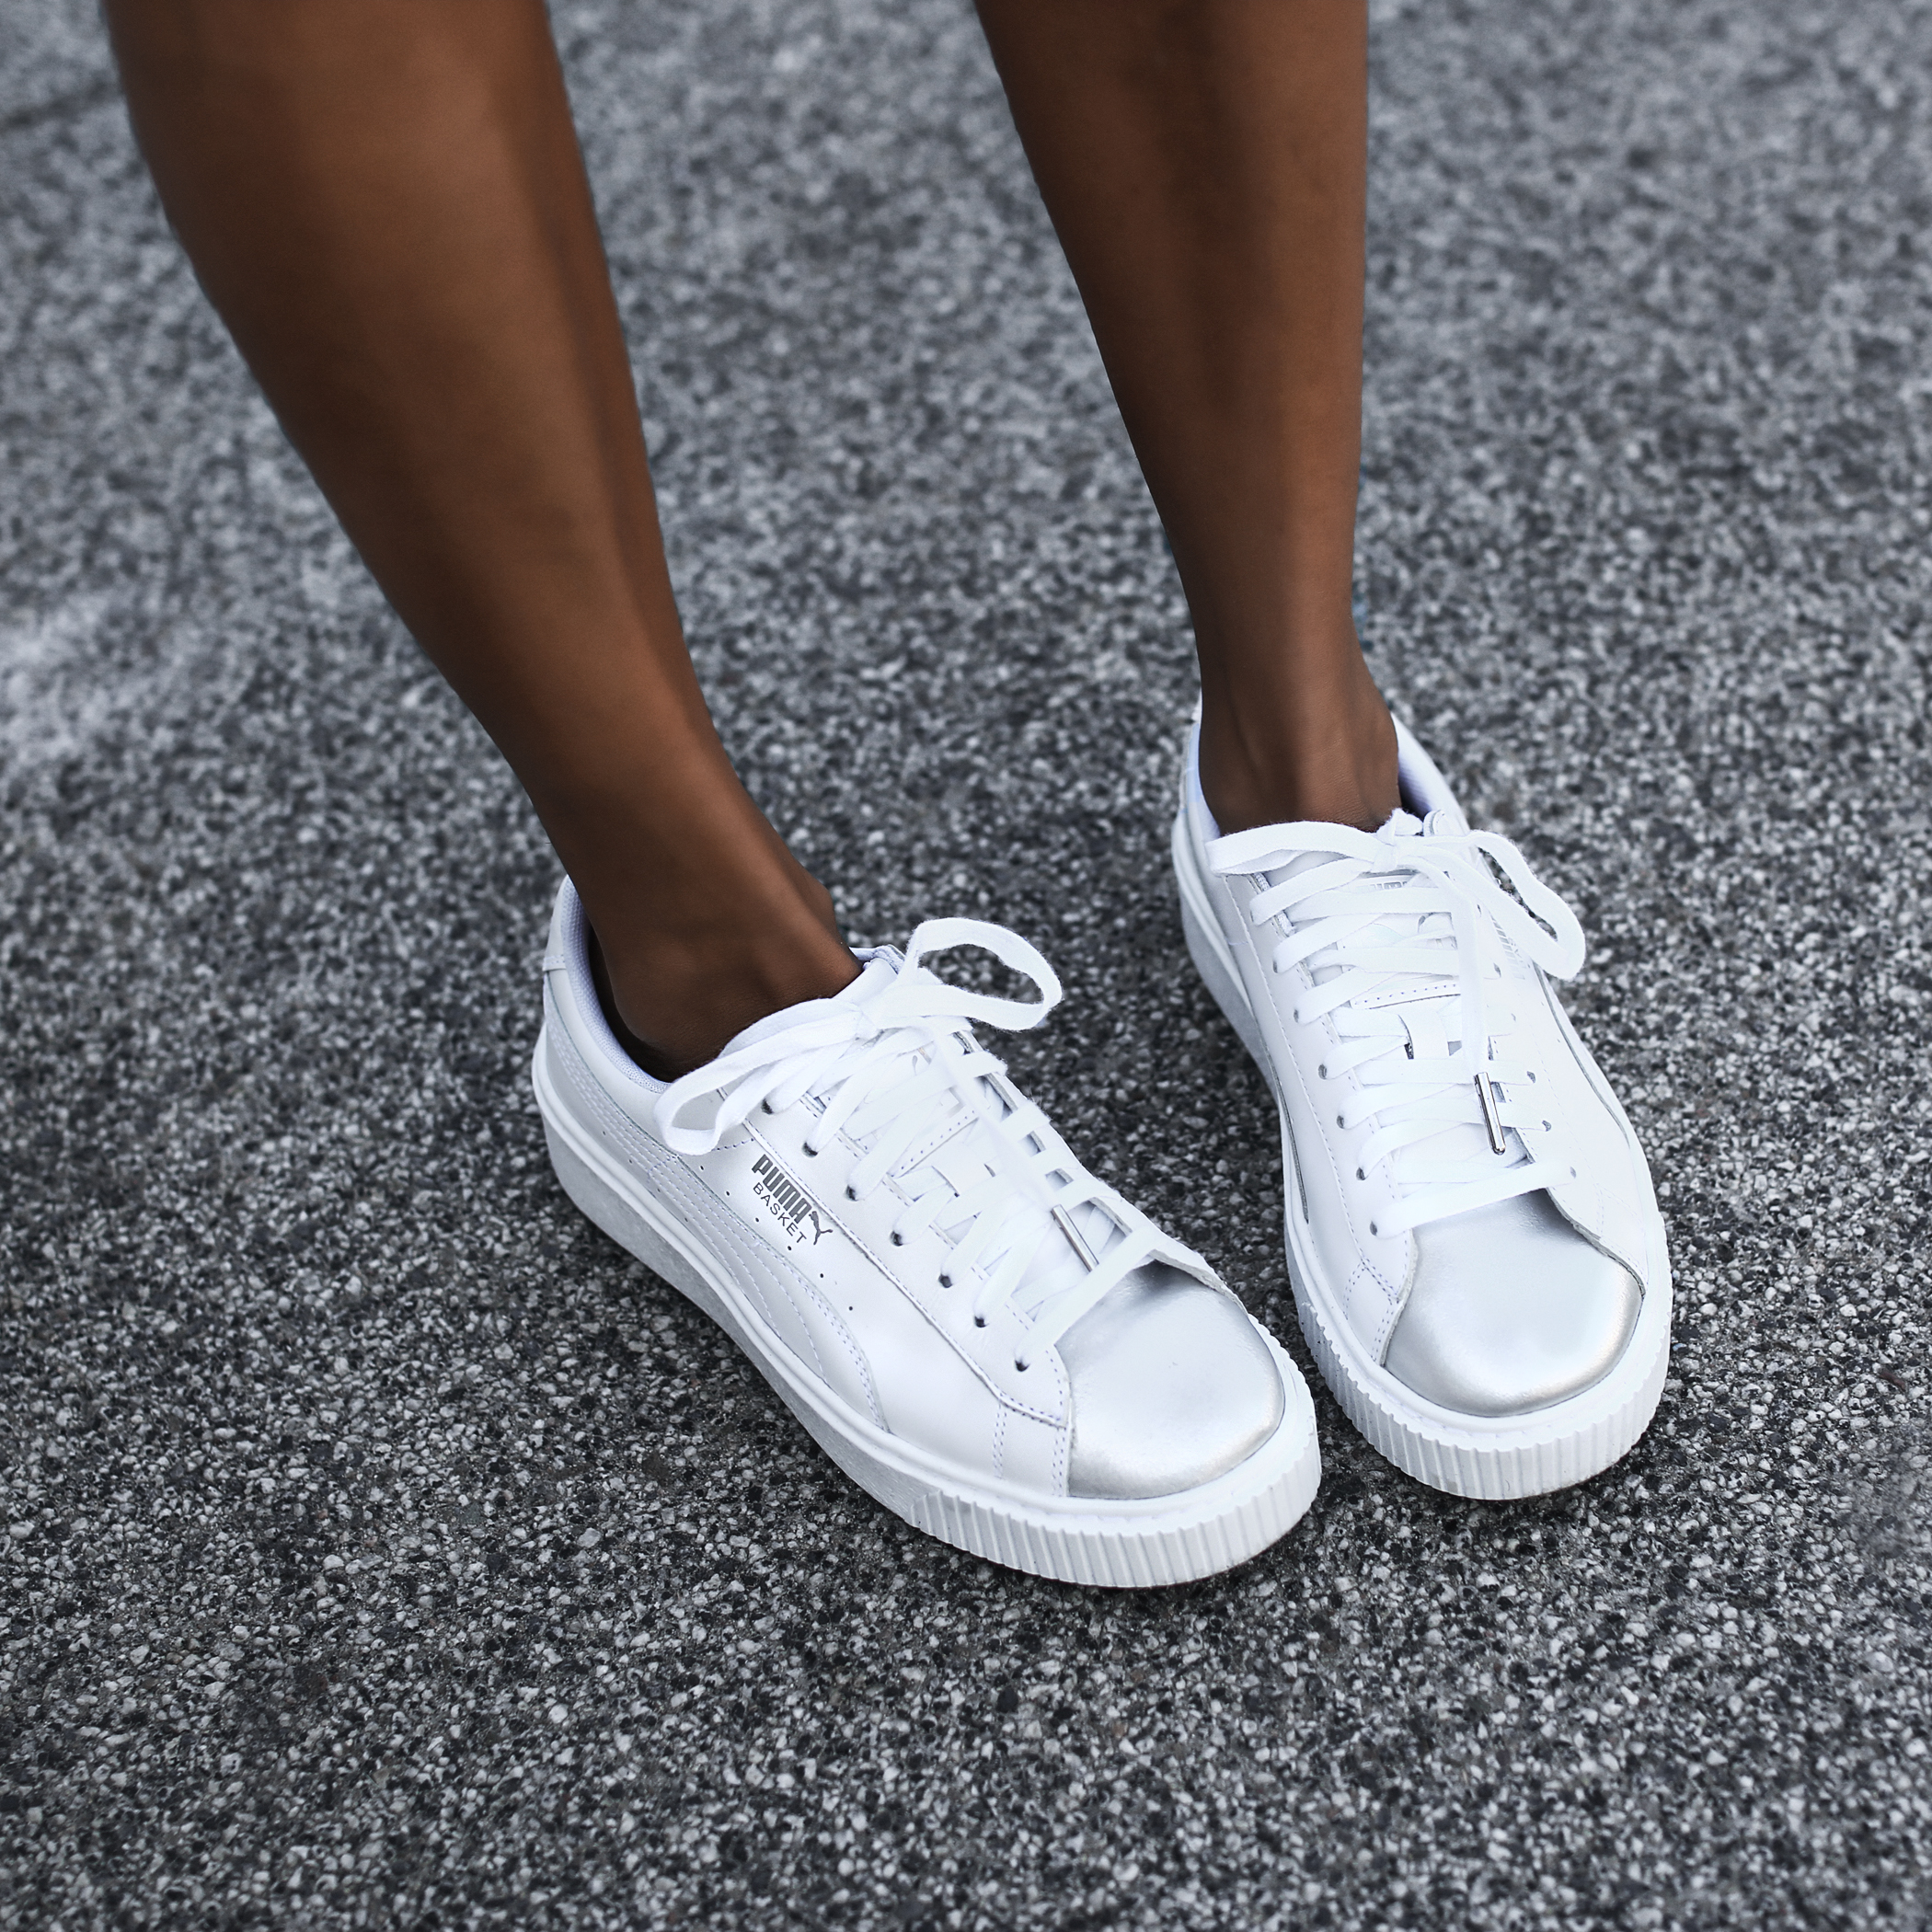 white puma sneakers with silver